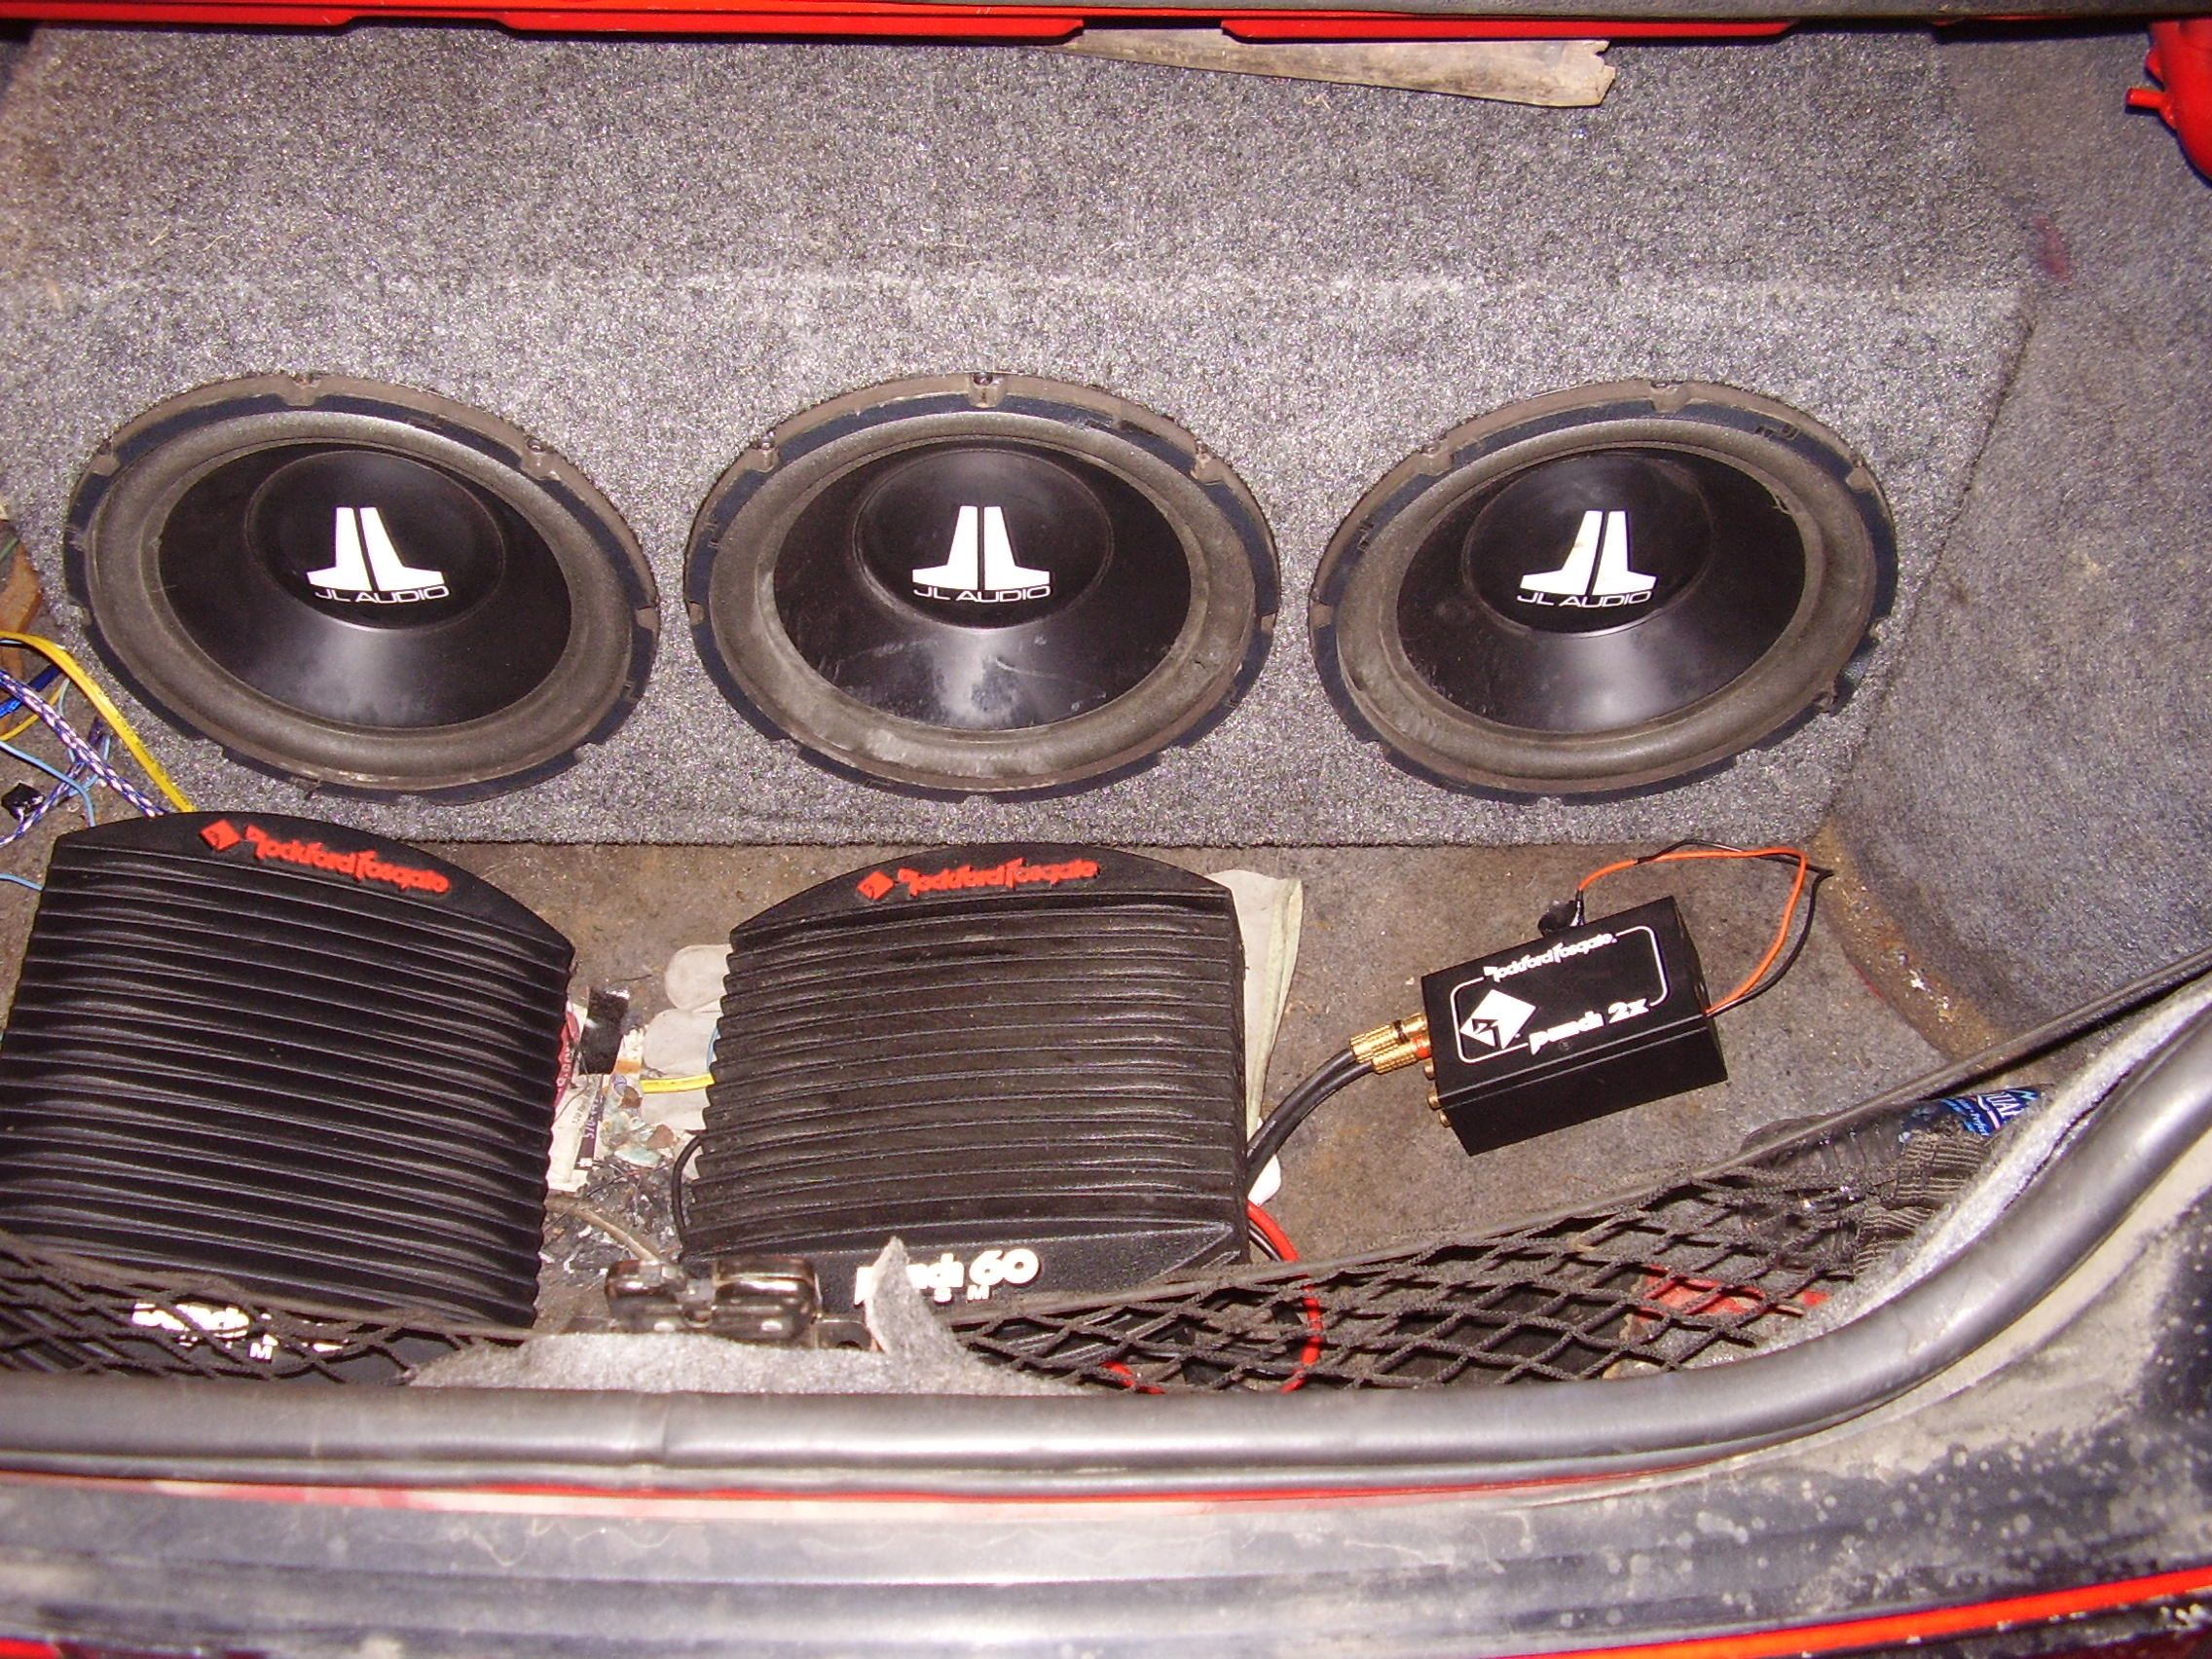 rockford fosgate enclosure with Details on Auction Image Gallery further Item sku likewise Wiring Subwoofers Ohms besides Fostex Speaker Box as well Celestion Speaker Box Enclosure.